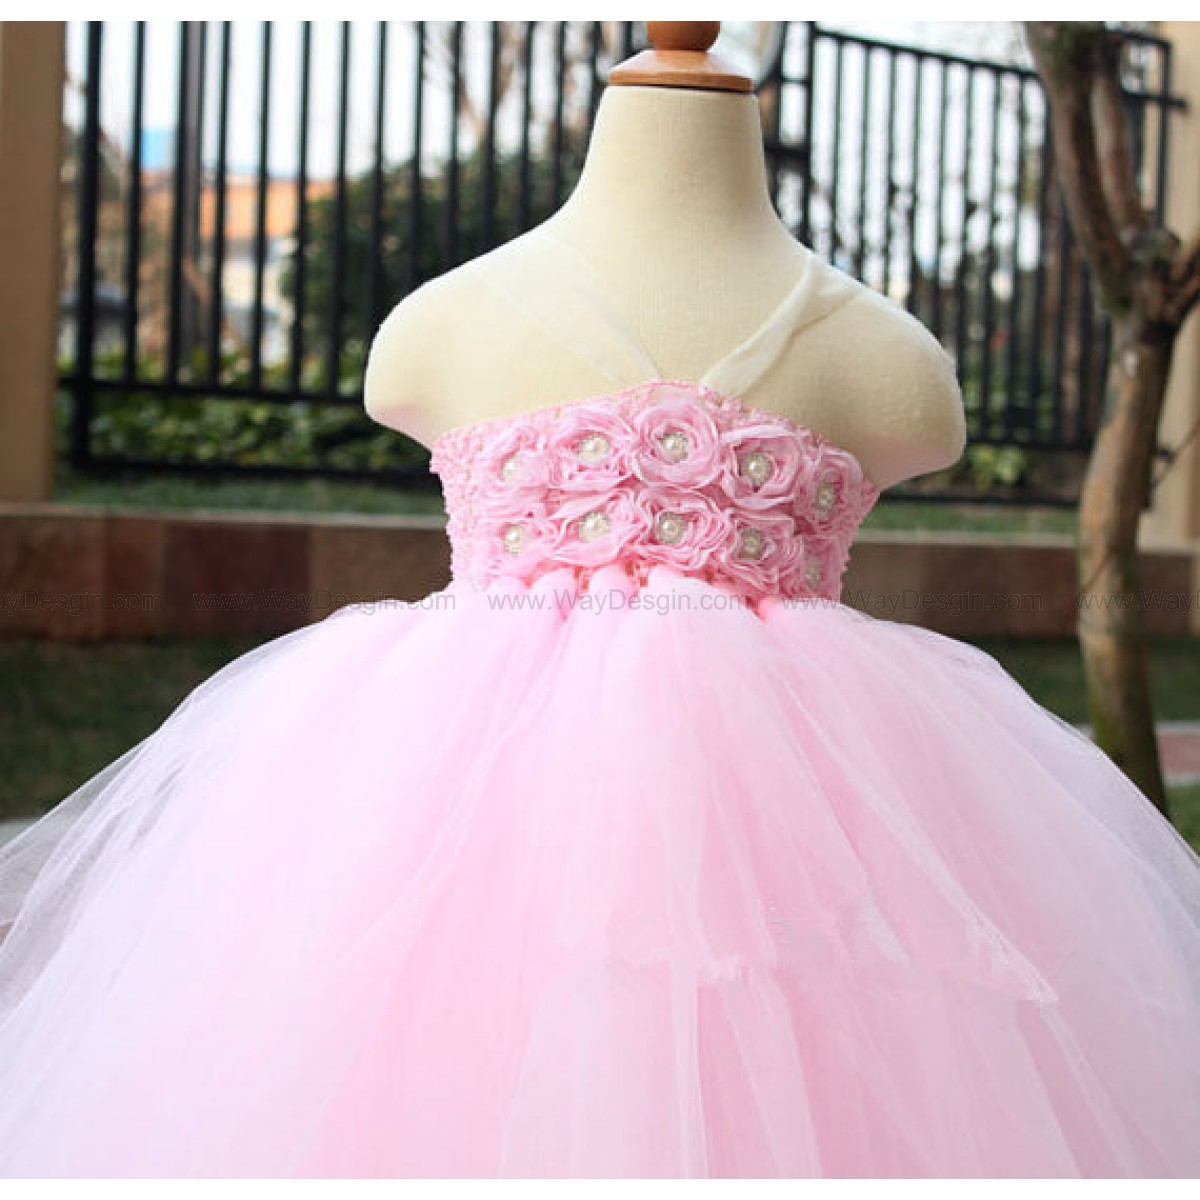 Pink tutu dress Flower Girl Dress baby dress toddler birthday dress wedding dress